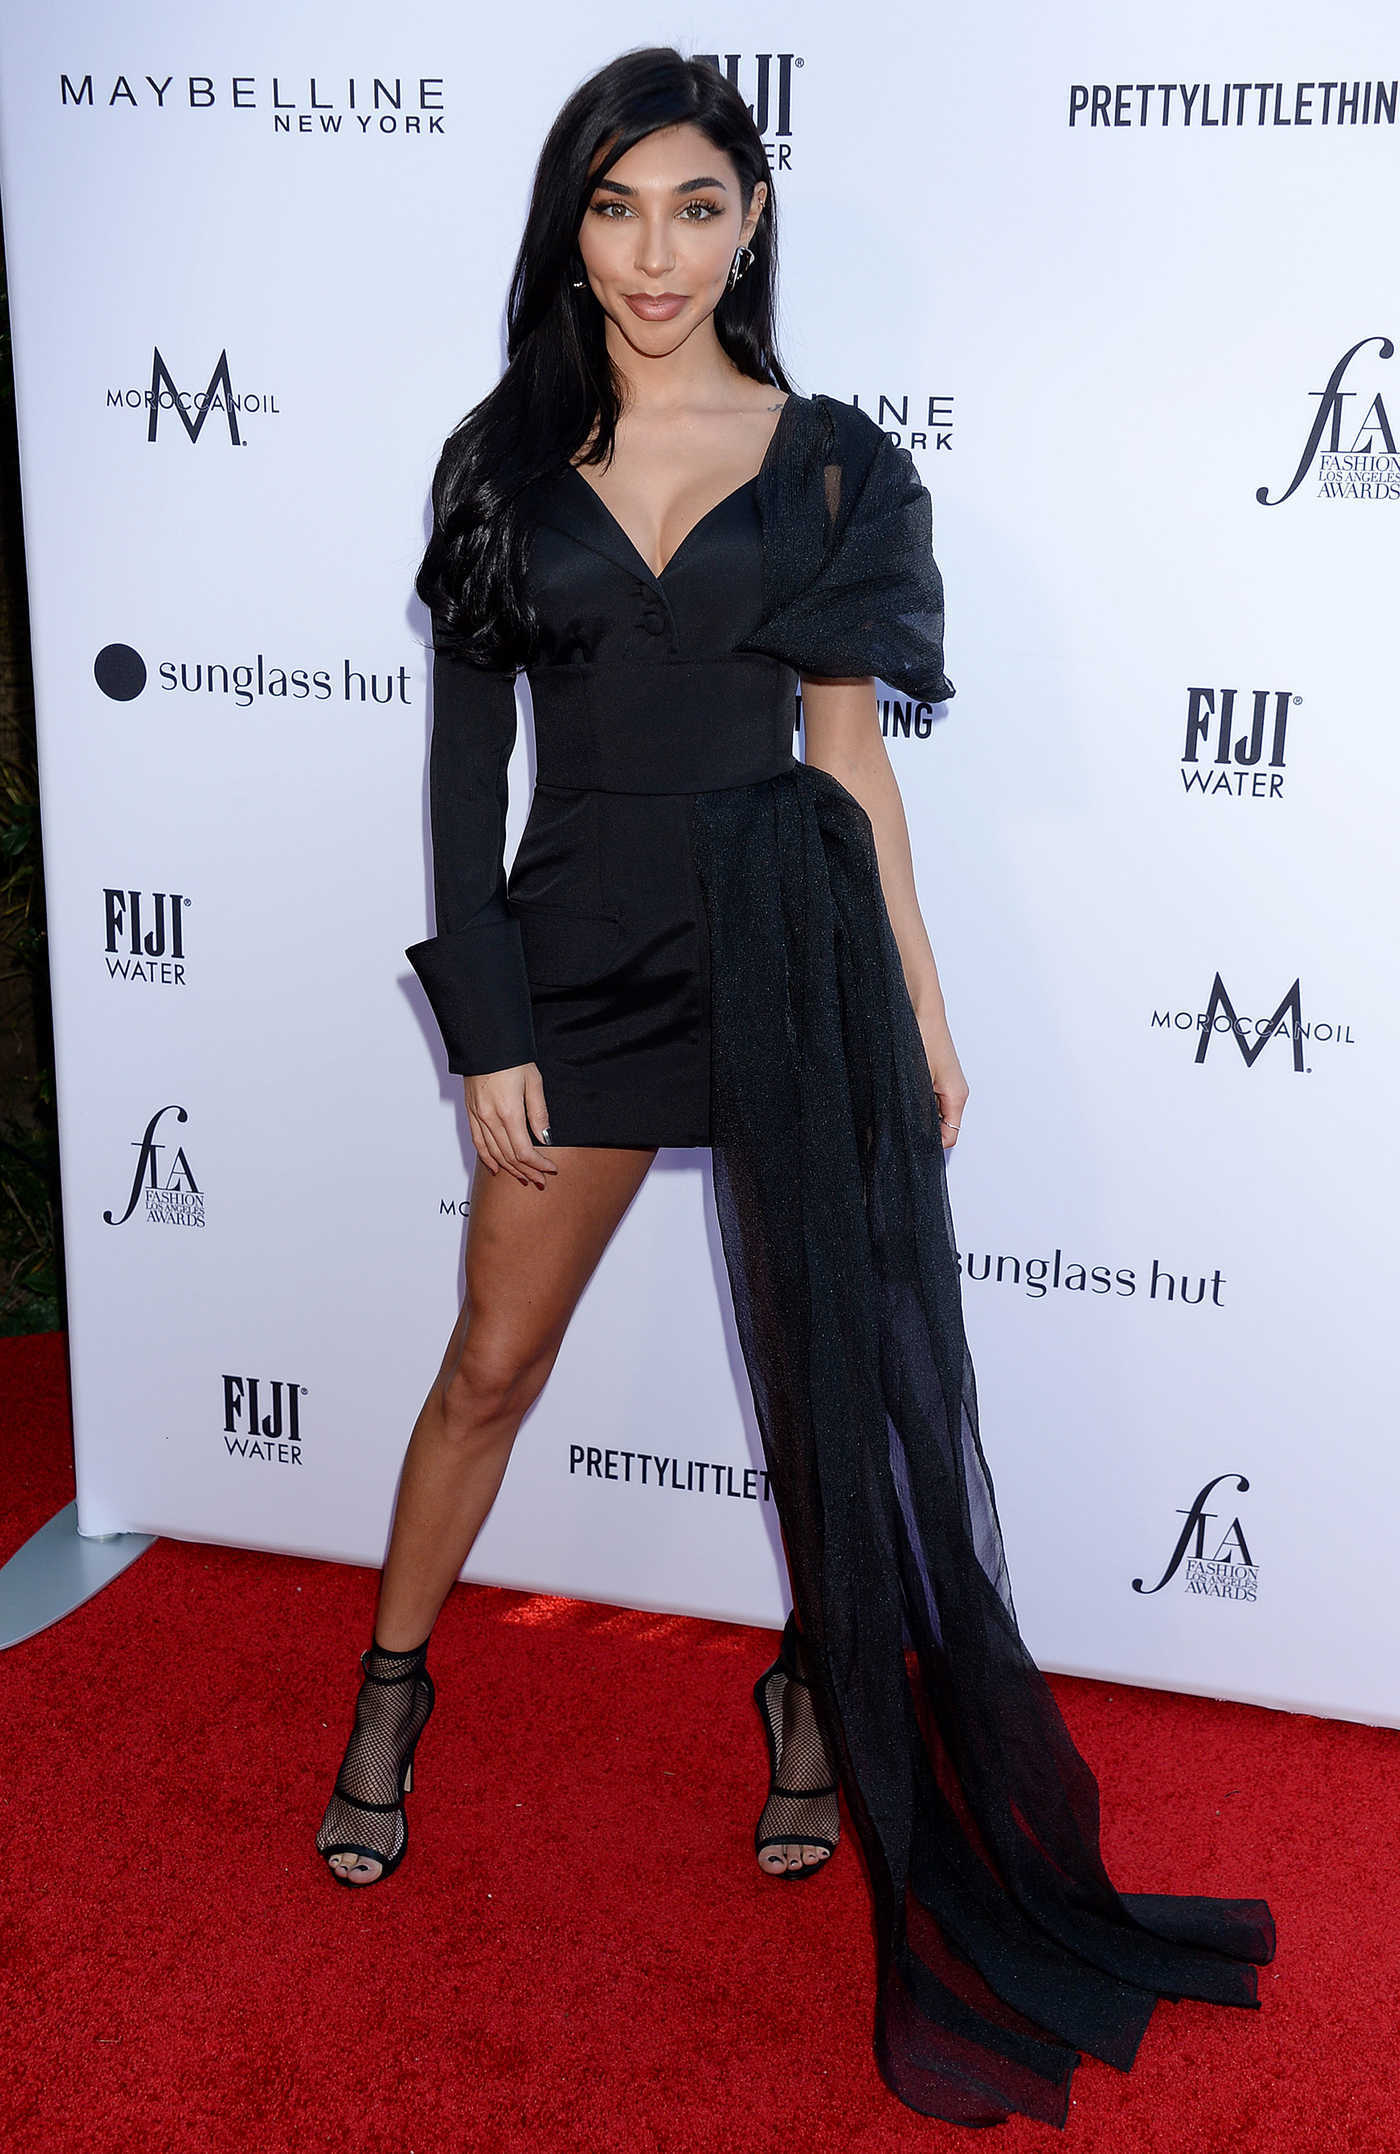 Chantel Jeffries Attends The Daily Front Row Fashion Awards at The Beverly Hills Hotel in Los Angeles 03/17/2019